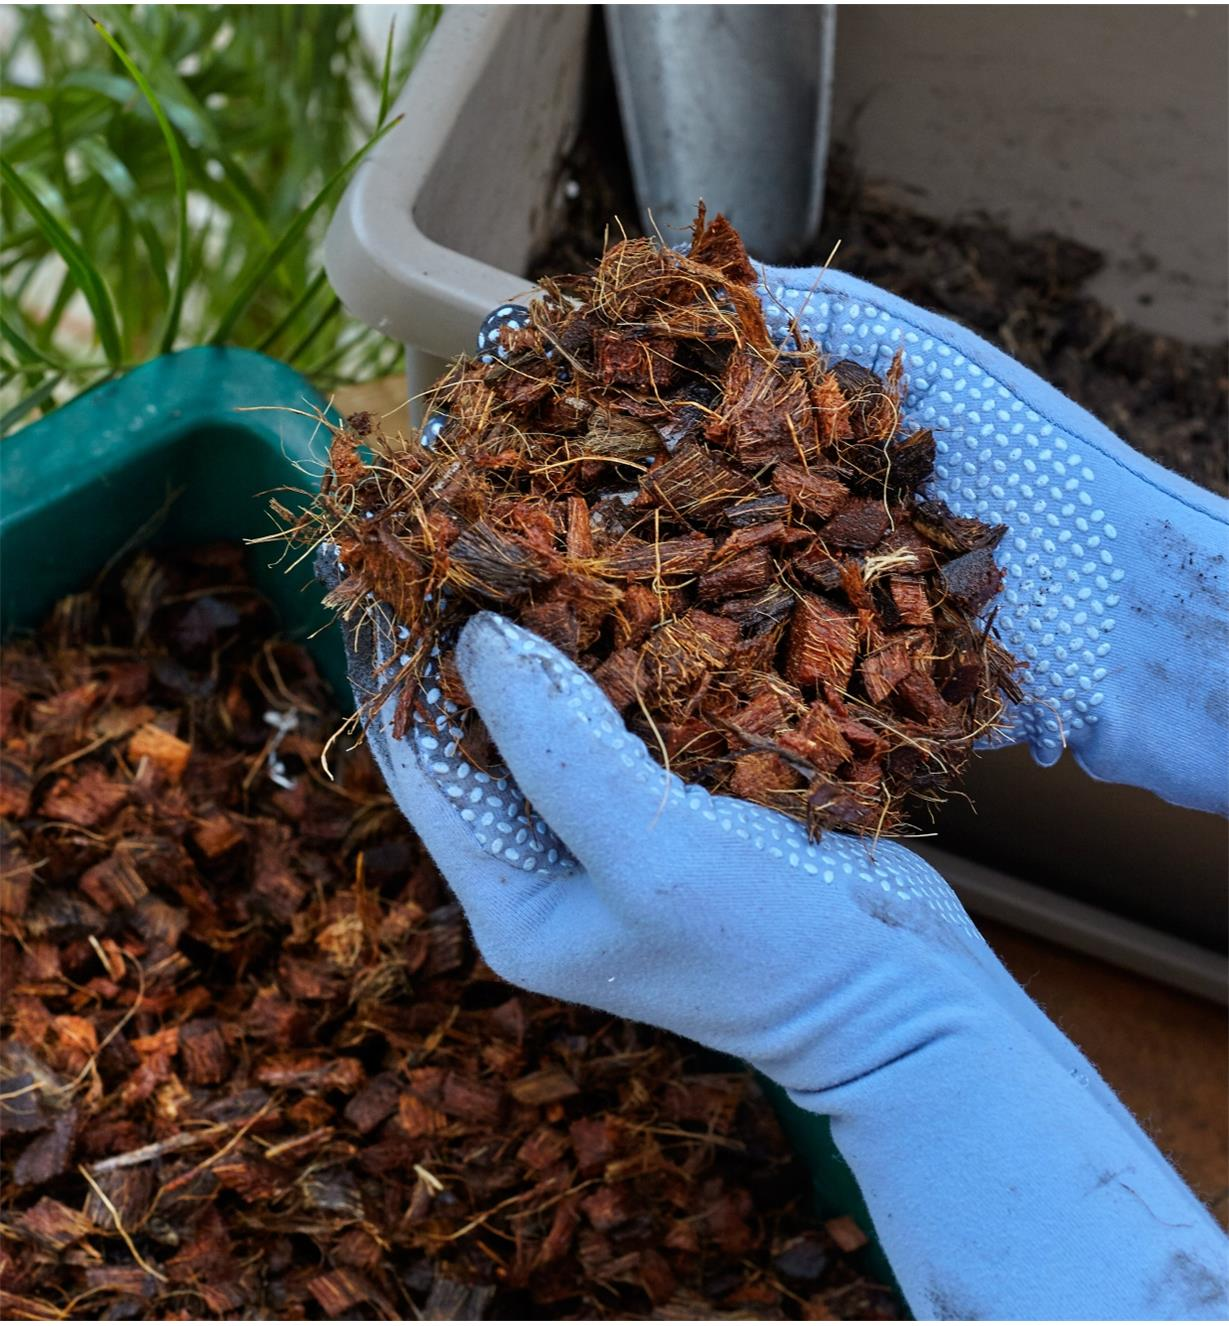 A gardener wearing gloves holds a handful of Coconut Husk Chips